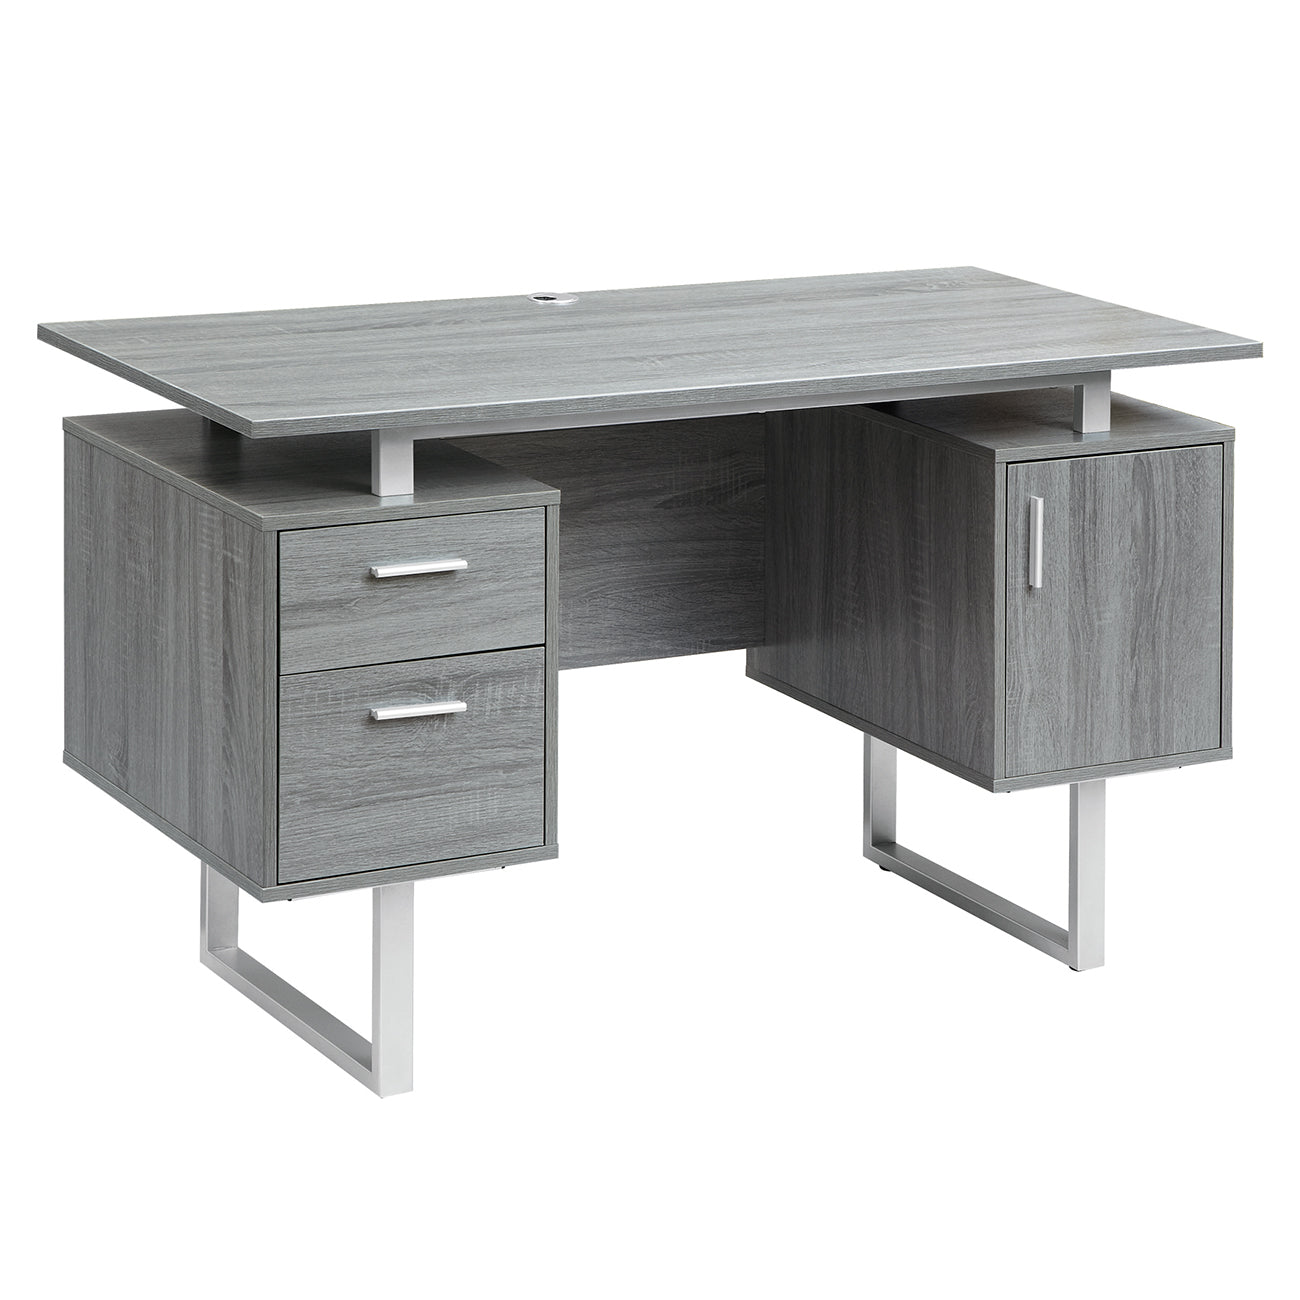 swivel drawers and furniture corner benefits plus for gray chair storage desks rug of feats stylish top also veneer desk office great